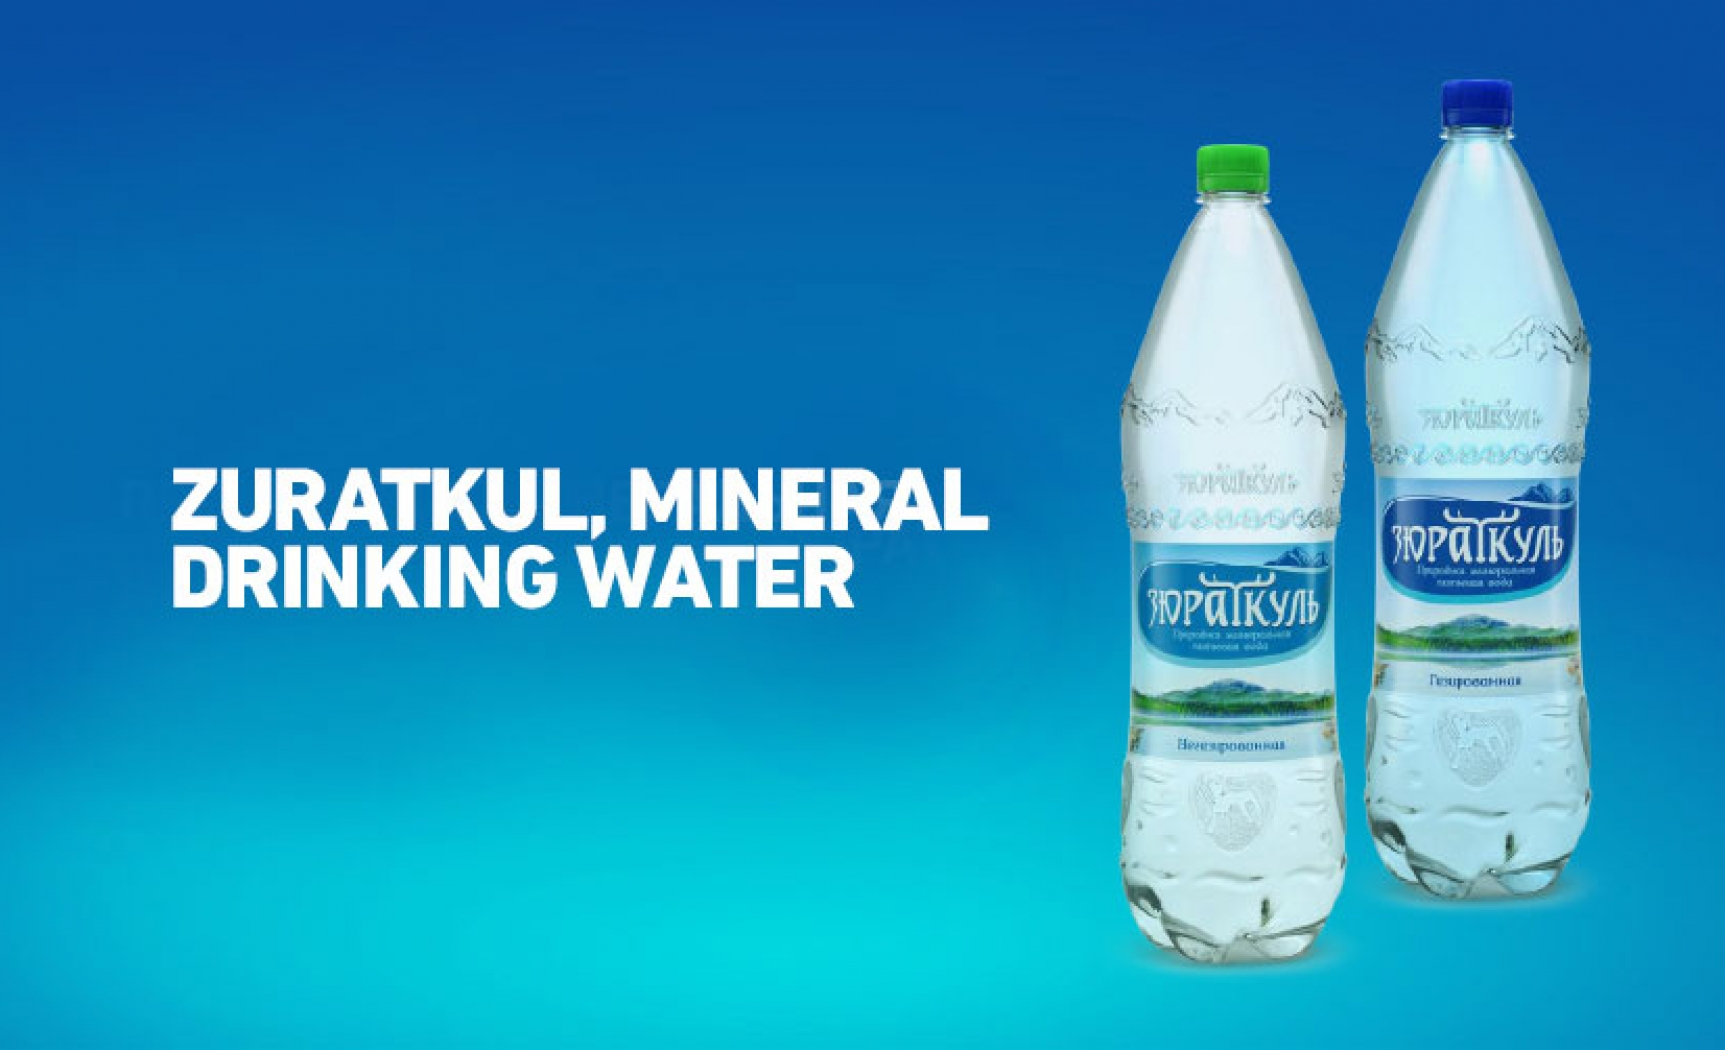 ZURATKUL, NATURAL MINERAL DRINKING WATER